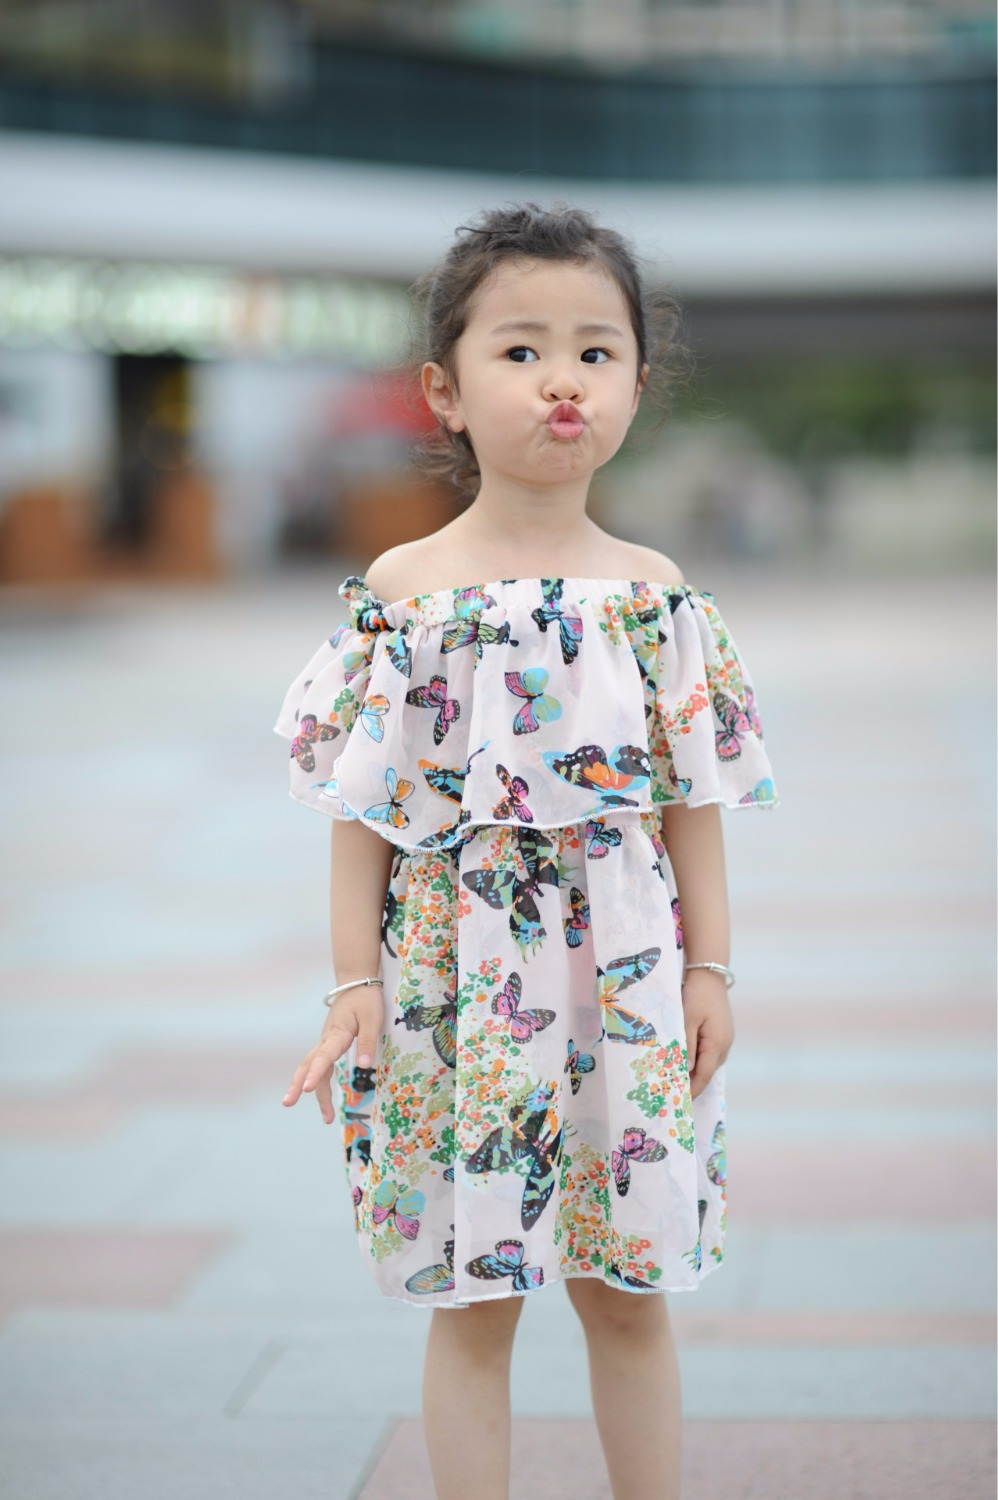 Shop mommy and me outfits at vanduload.tk, including chic mother daughter outfits, mommy and baby outfits, matching dresses and sets. Free shipping.